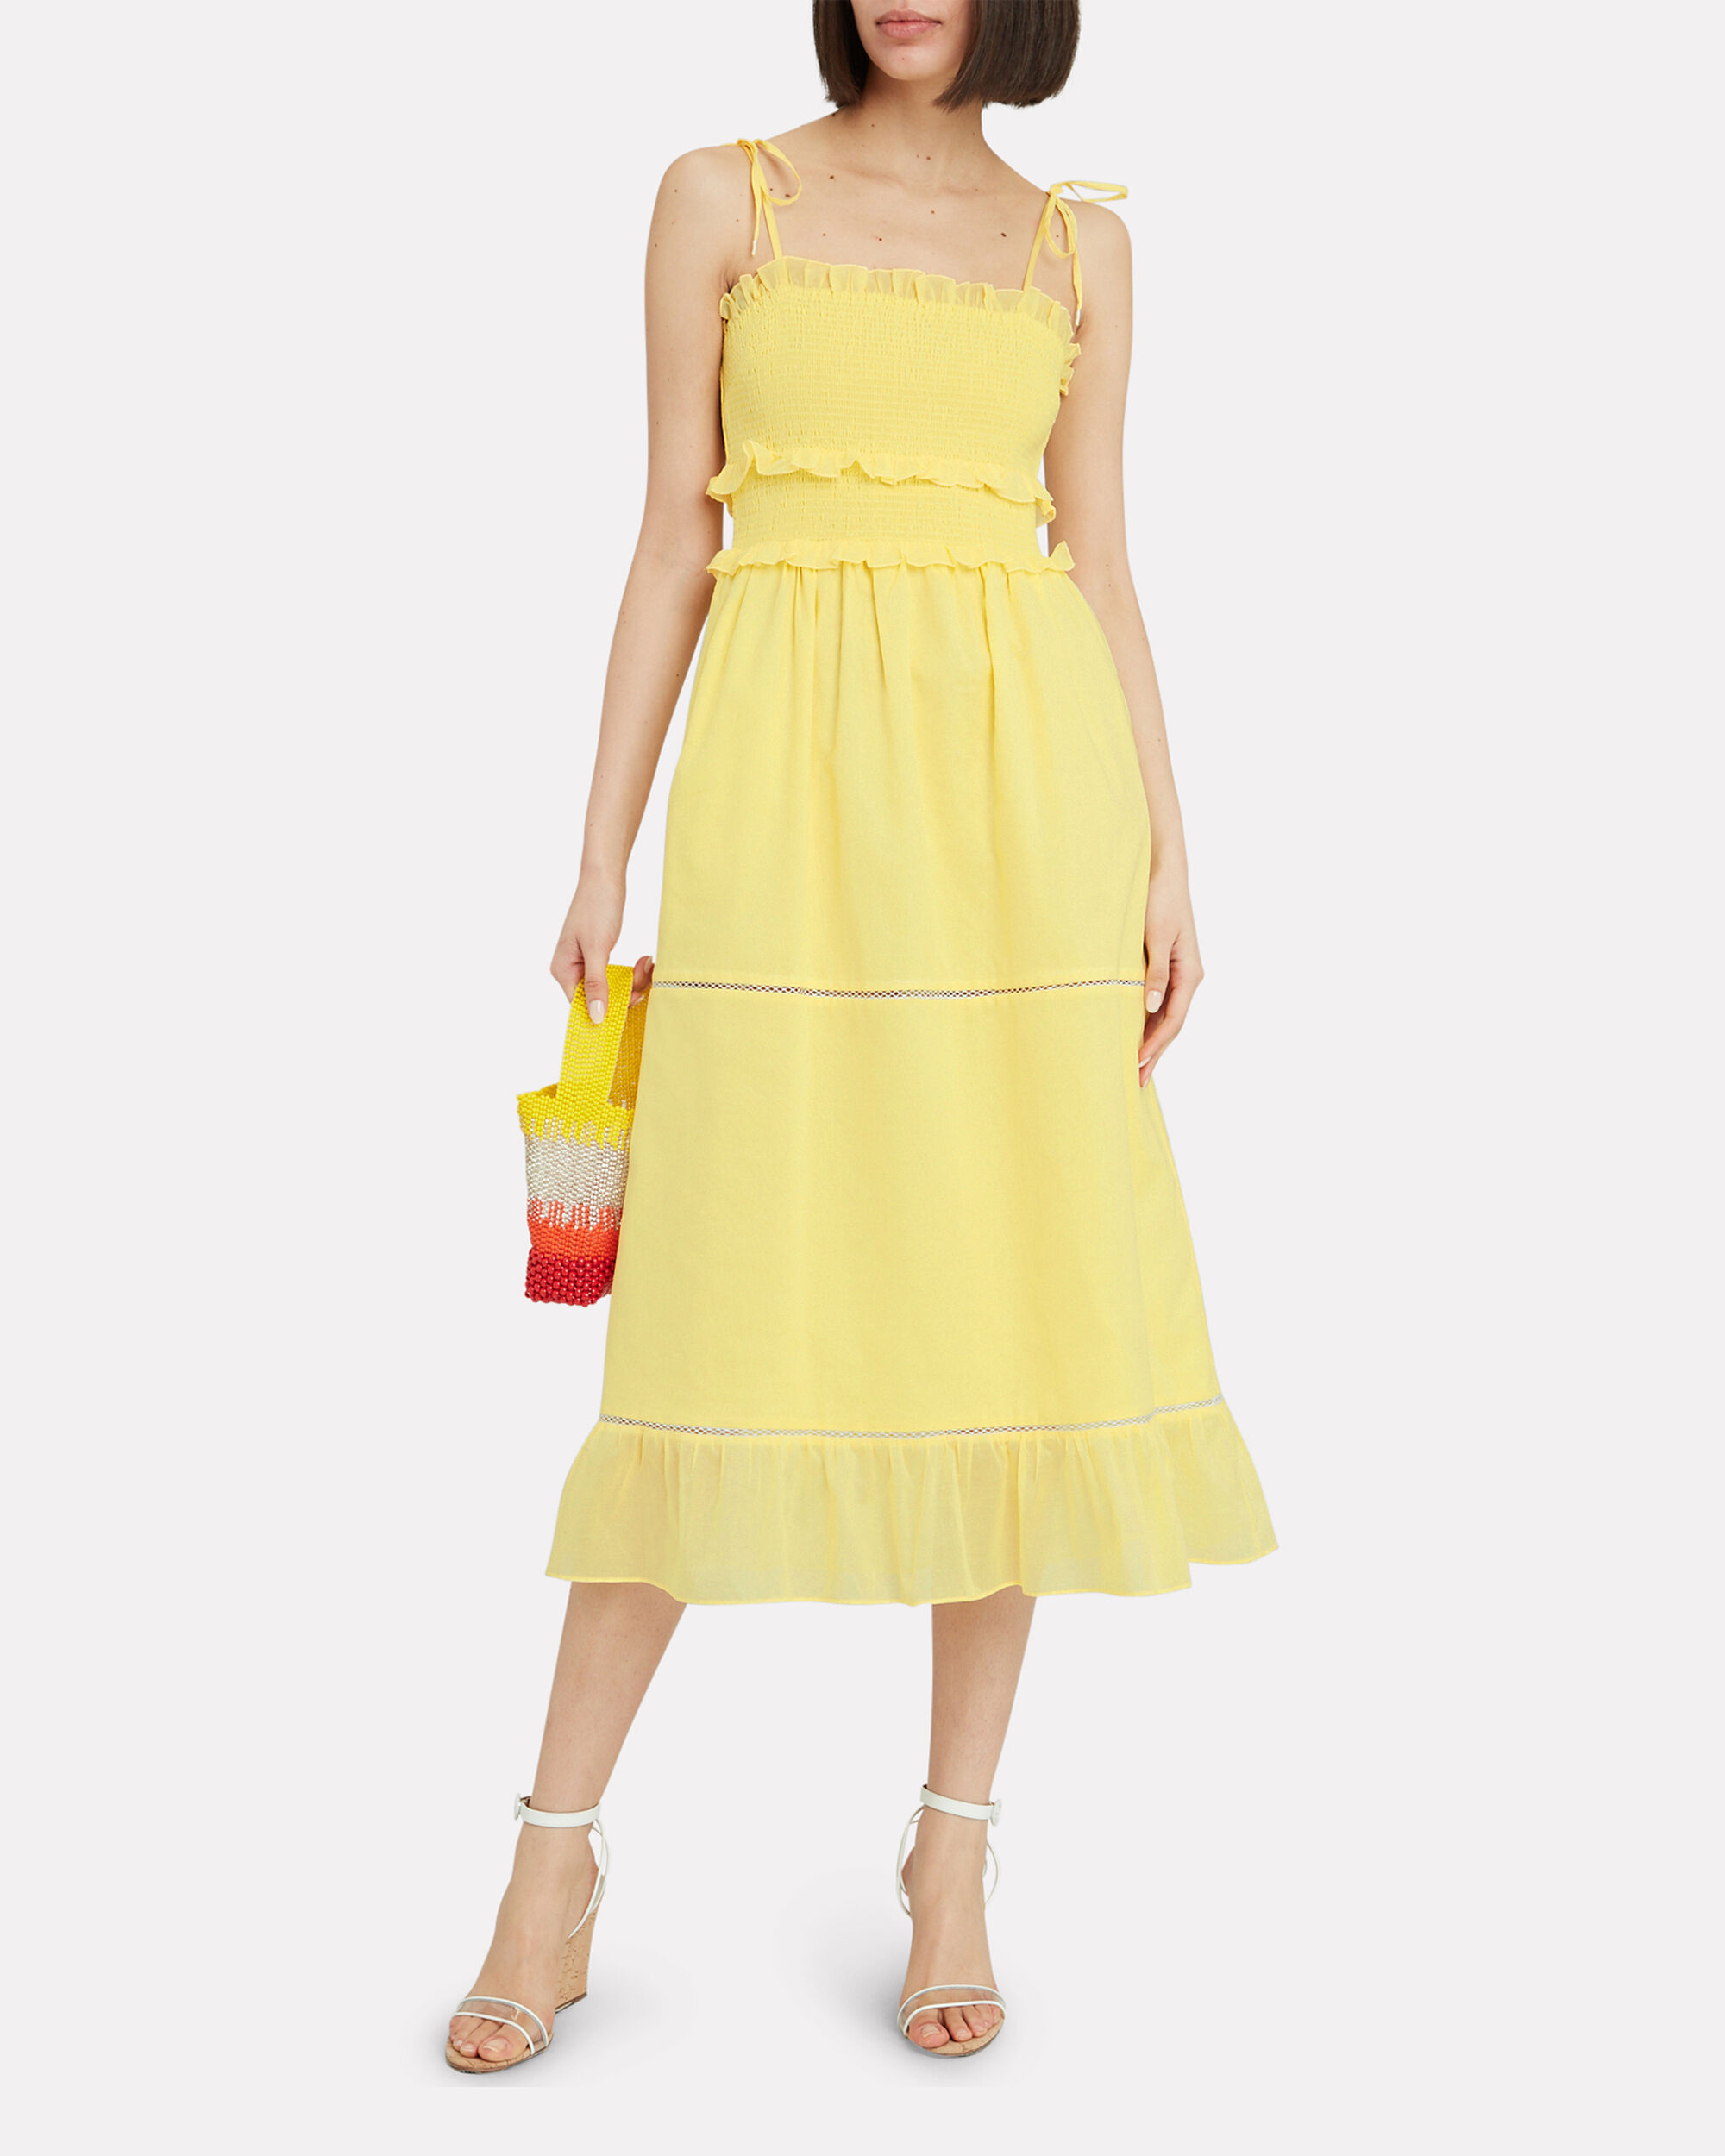 Luna Smocked Sleeveless Dress, YELLOW, hi-res